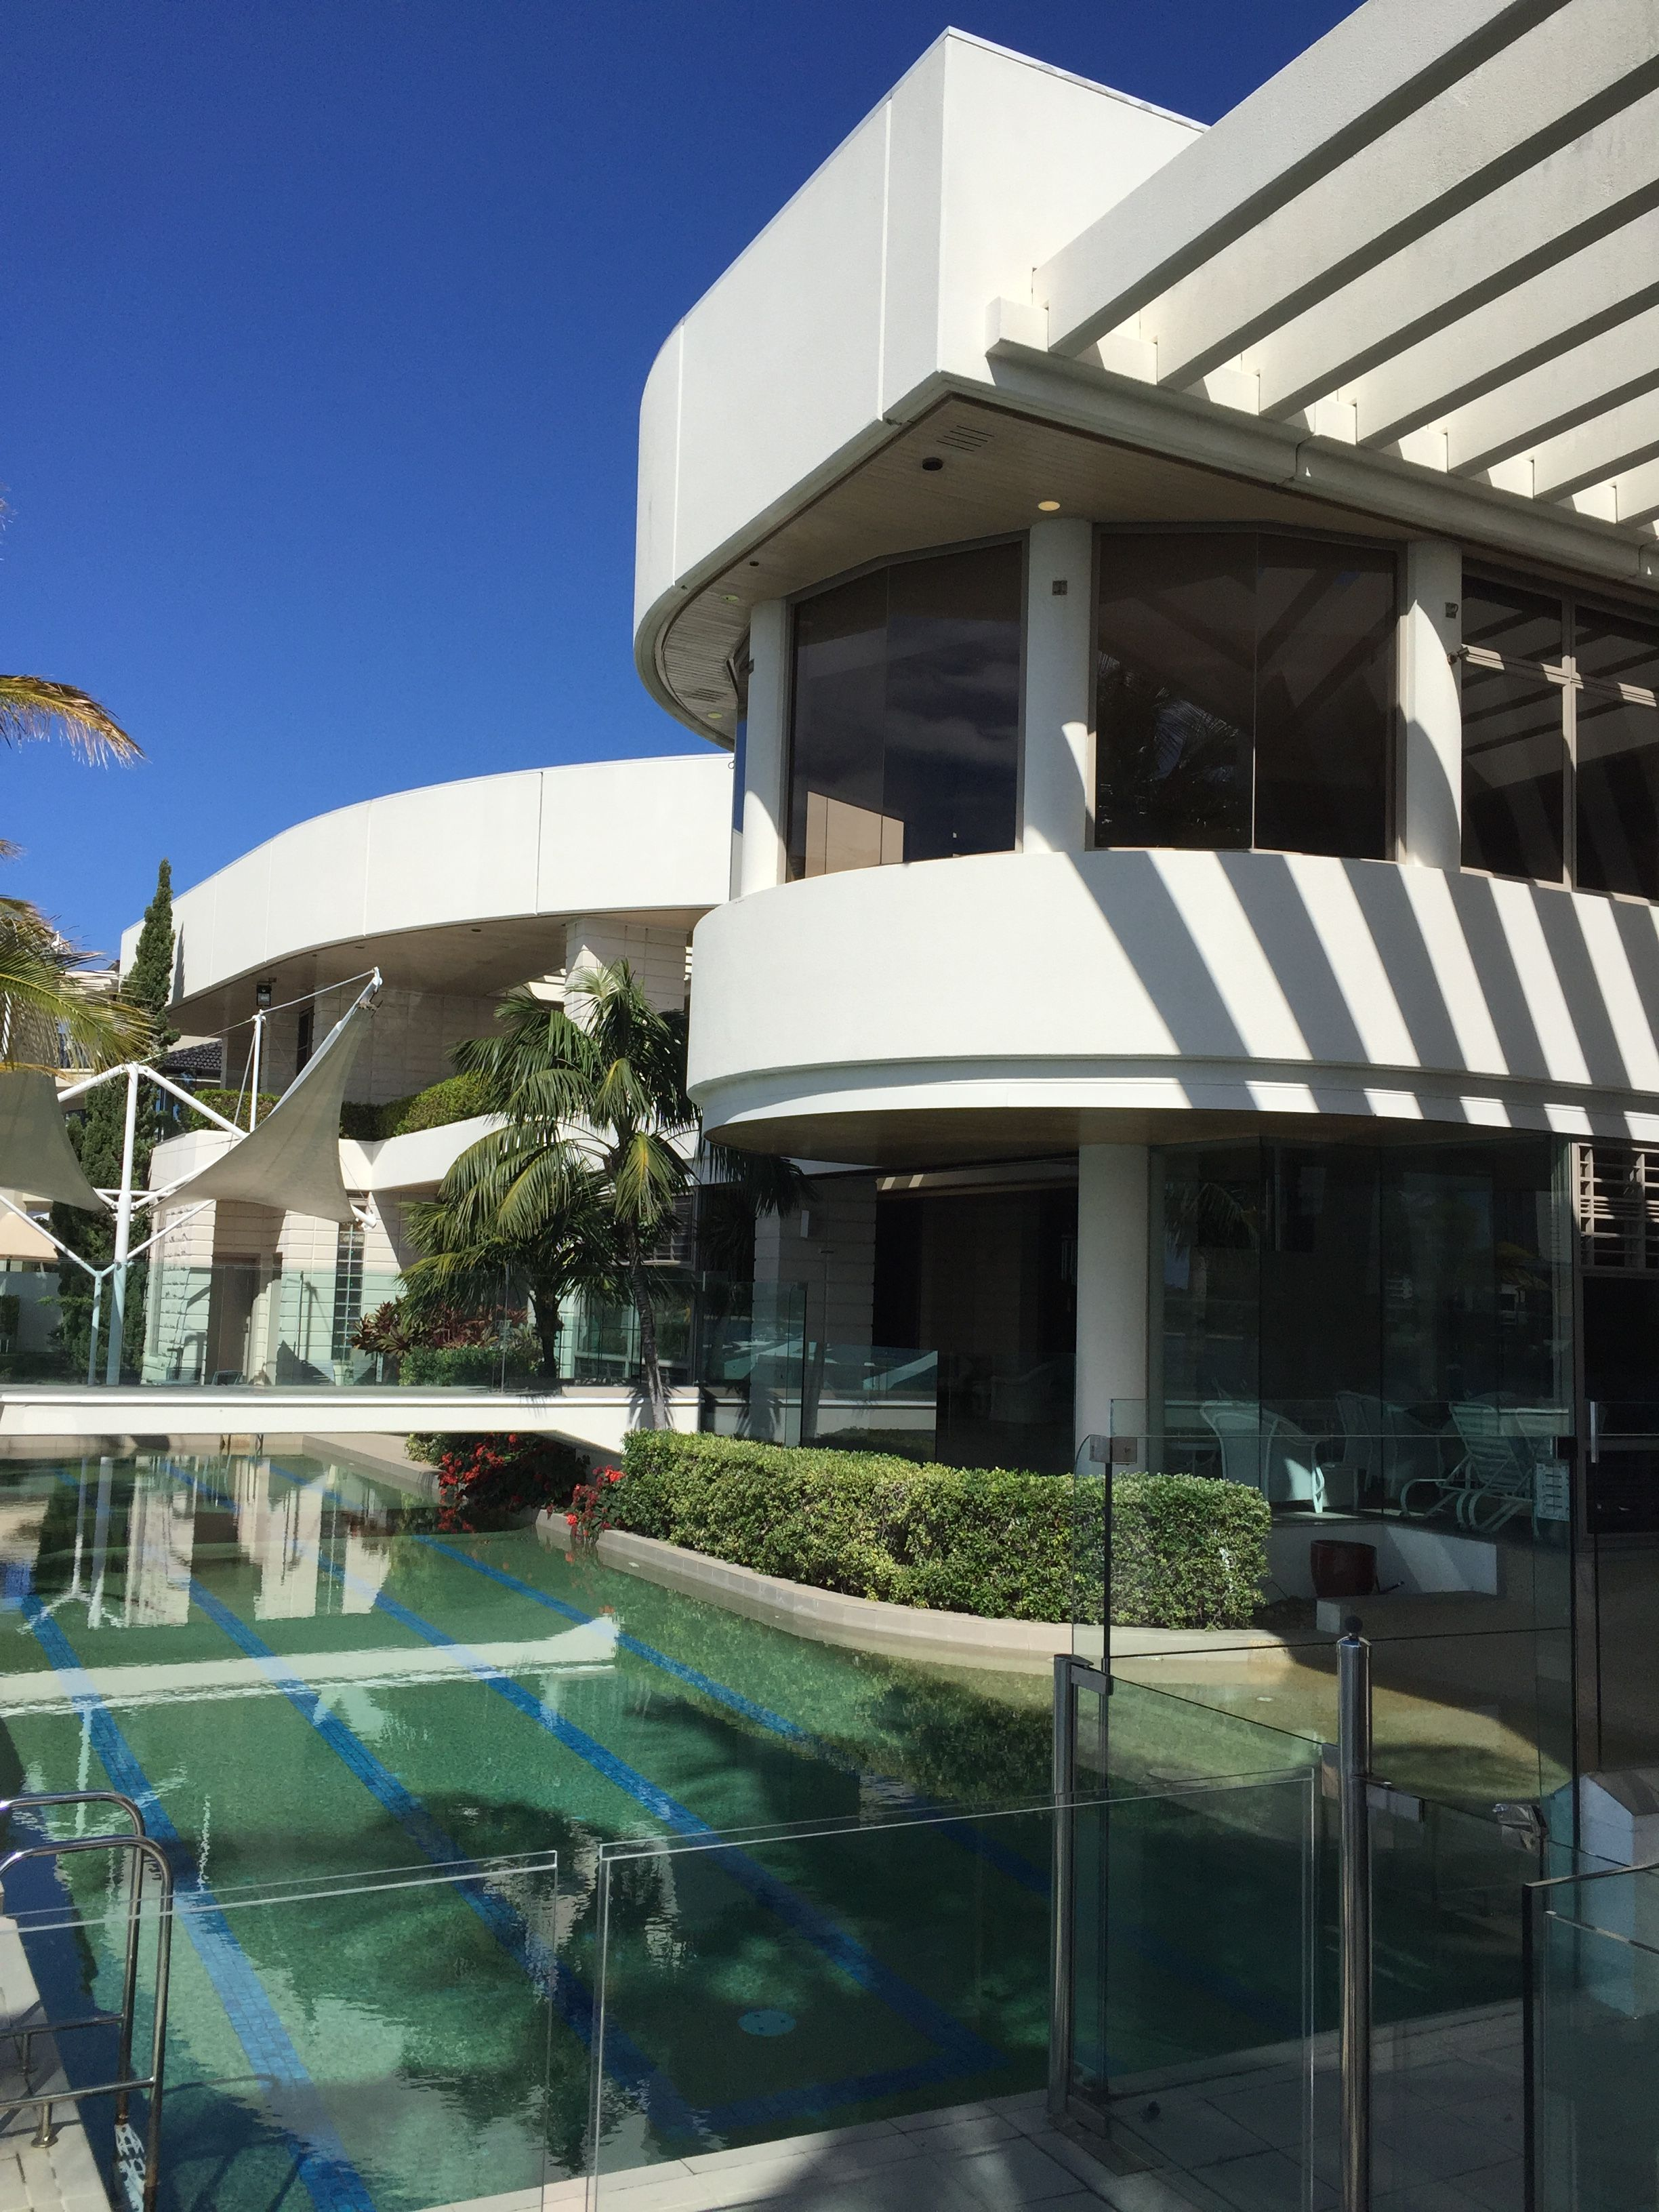 External House Wash Of The Crocodile Dundee Mansion On The Gold Coast By Waterworx Pressure